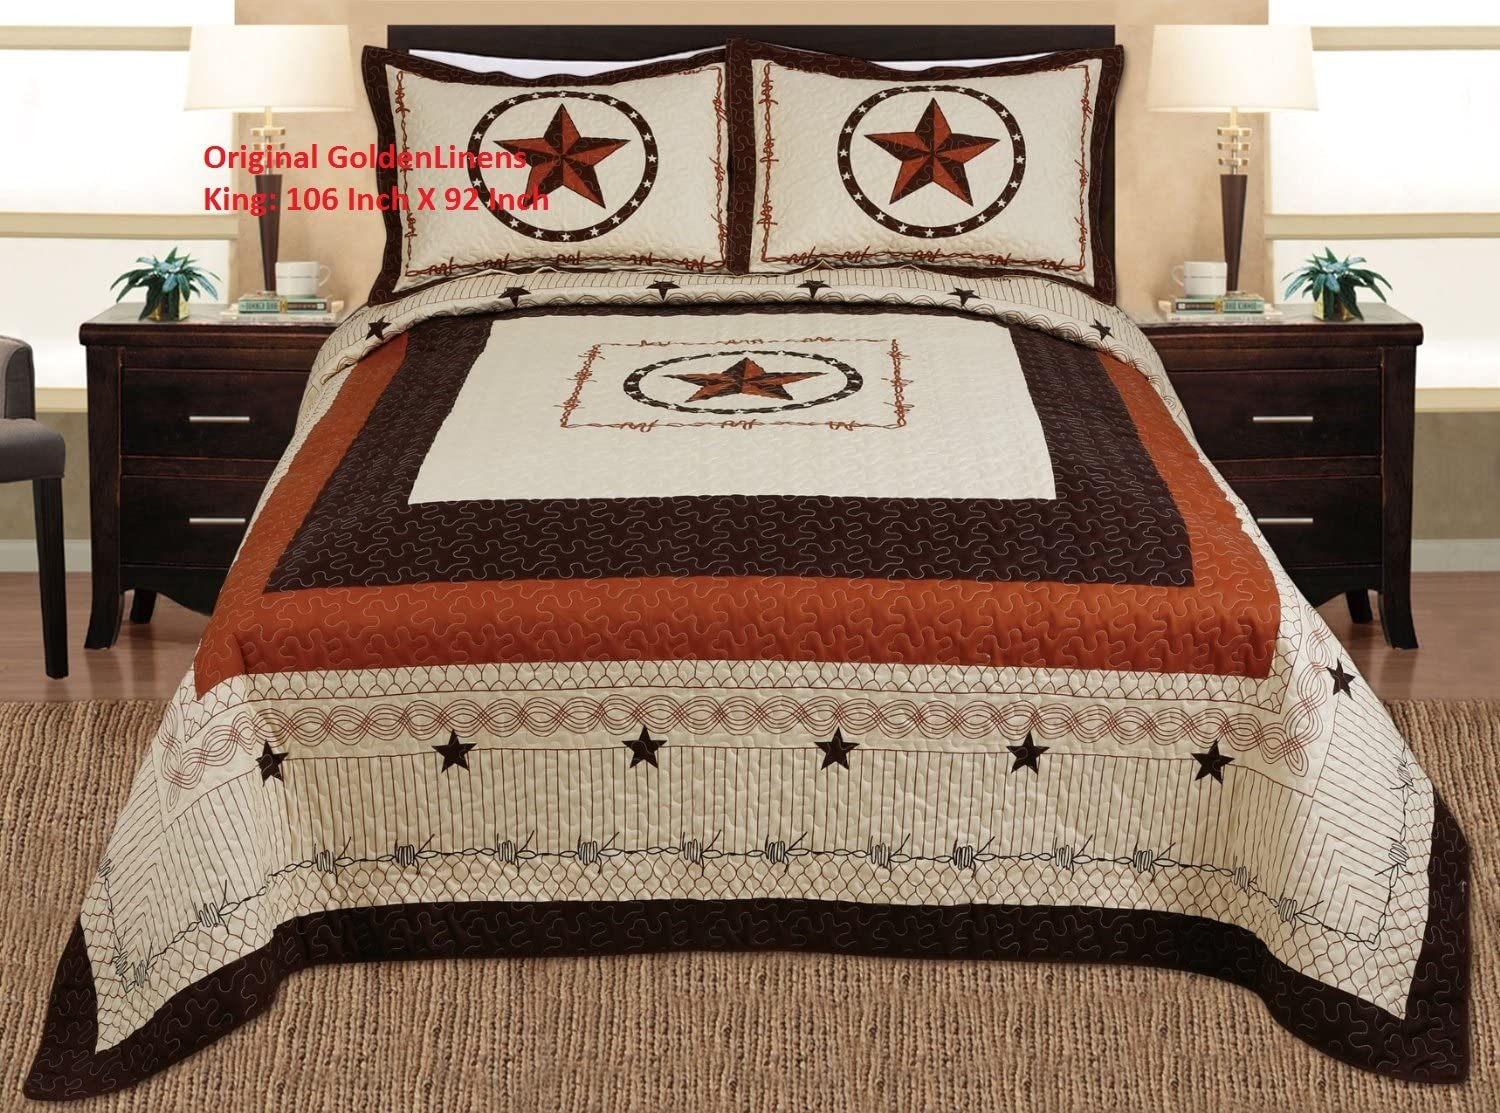 3-piece Western Lone Star Barb Wire Cabin / Lodge Quilt Bedspread Coverlet Set King Size Beige, Brown, Black